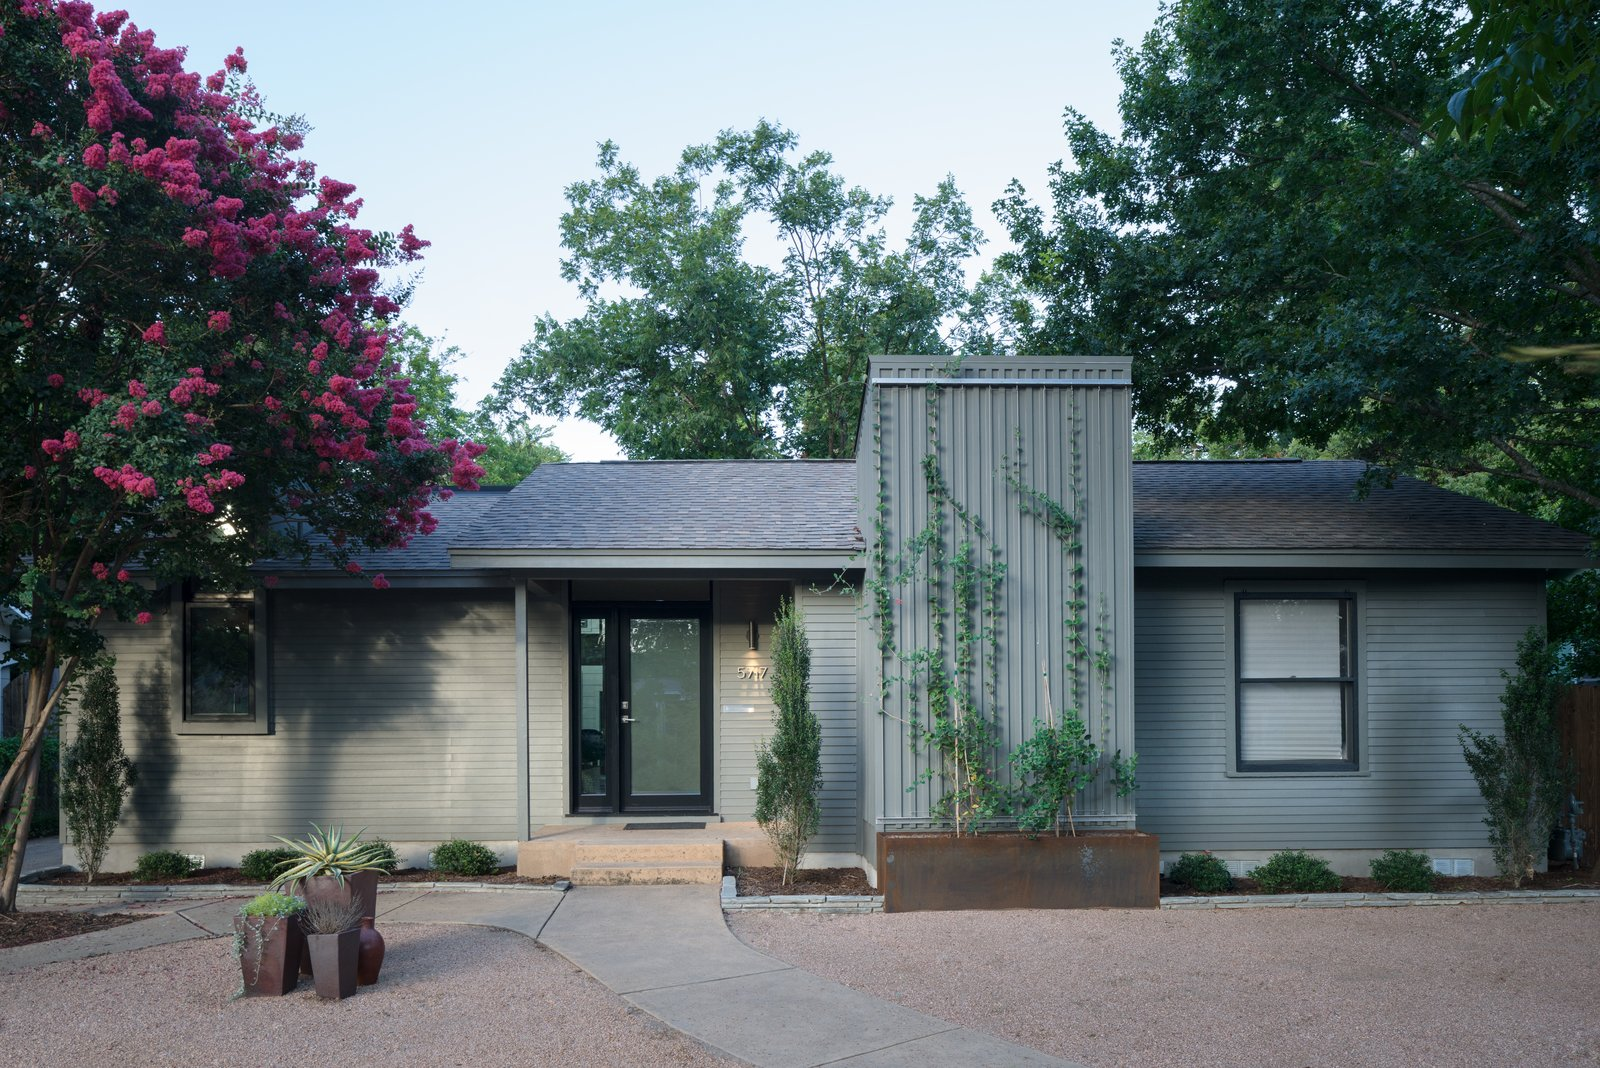 The front elevation of the home remained modest in appearance with a simple vertical addition, maintaining the typical Austin bungalow aesthetic. Tagged: Outdoor, Walkways, Front Yard, Trees, Hardscapes, and Shrubs.  Best Outdoor Walkways Hardscapes Photos from Bringing Light Into a Modest 1940s Bungalow in Austin